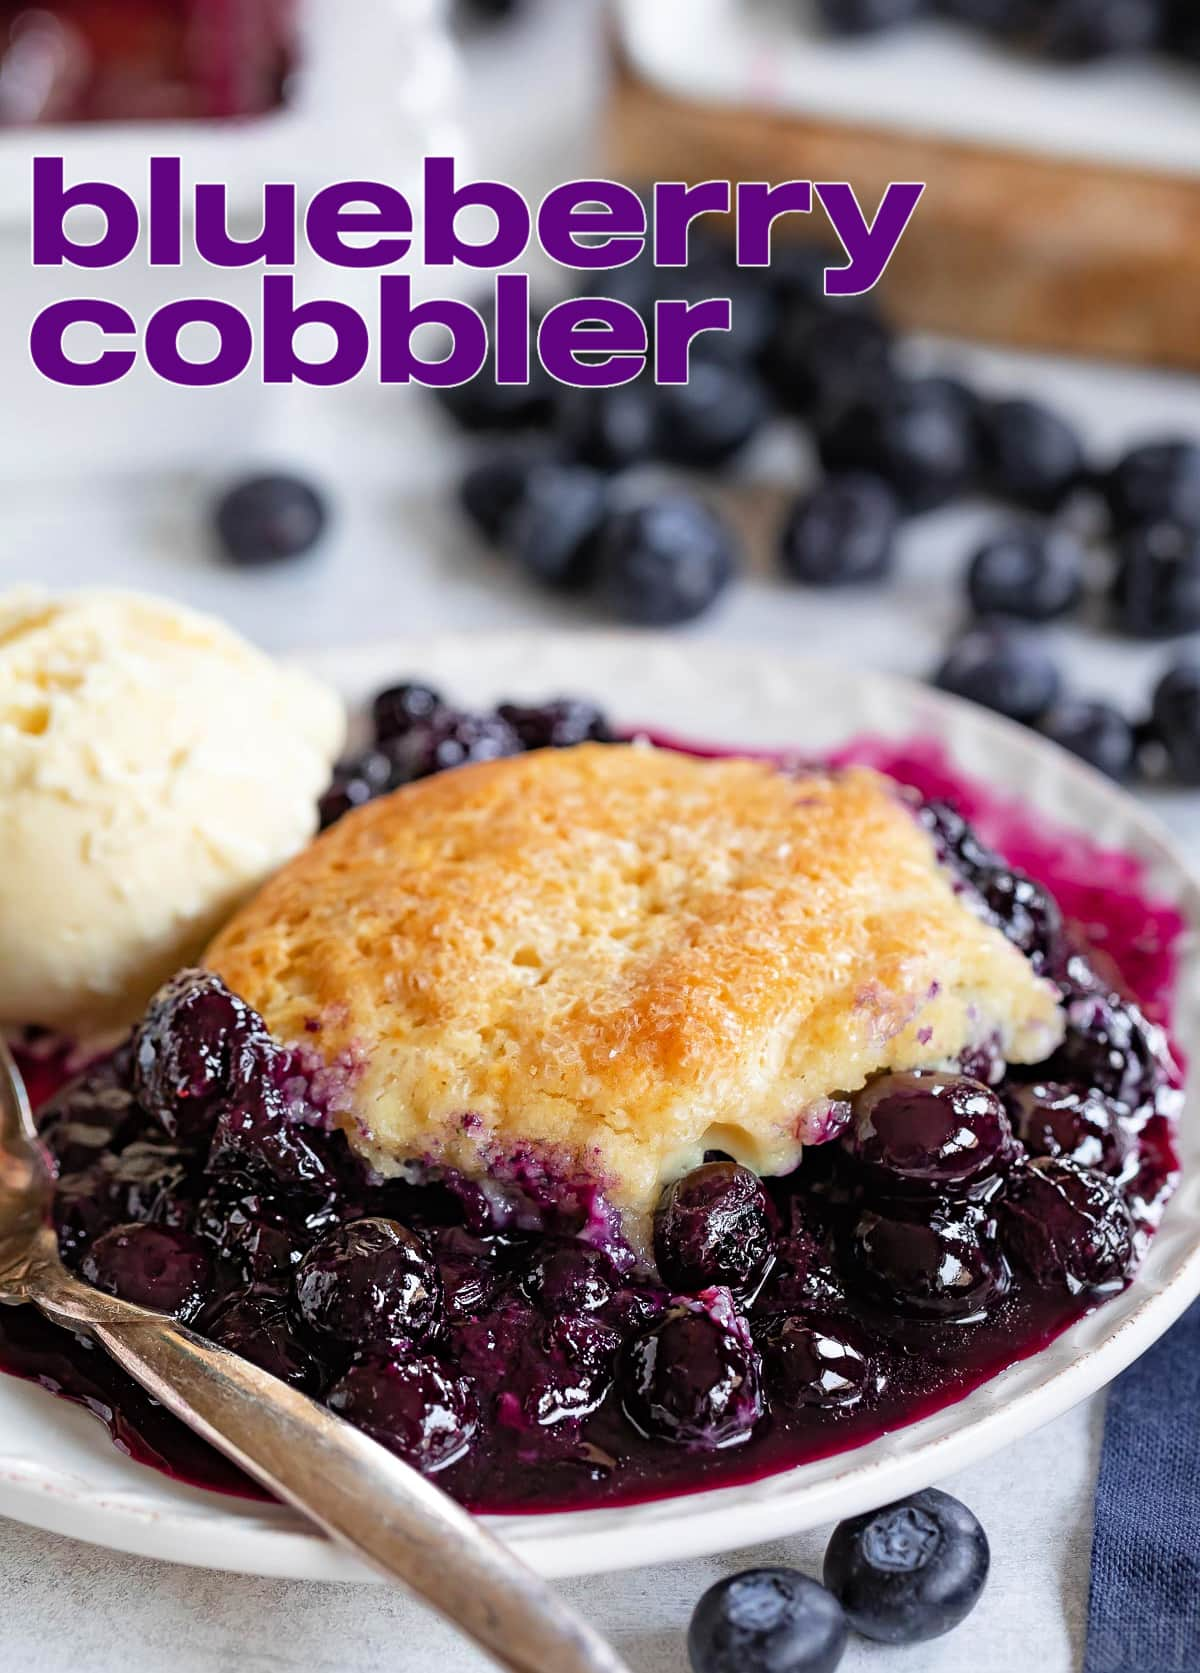 blueberry cobbler on small plate served with a scoop of vanilla ice cream. Fresh blueberries scattered about. Title overlay at top of image.